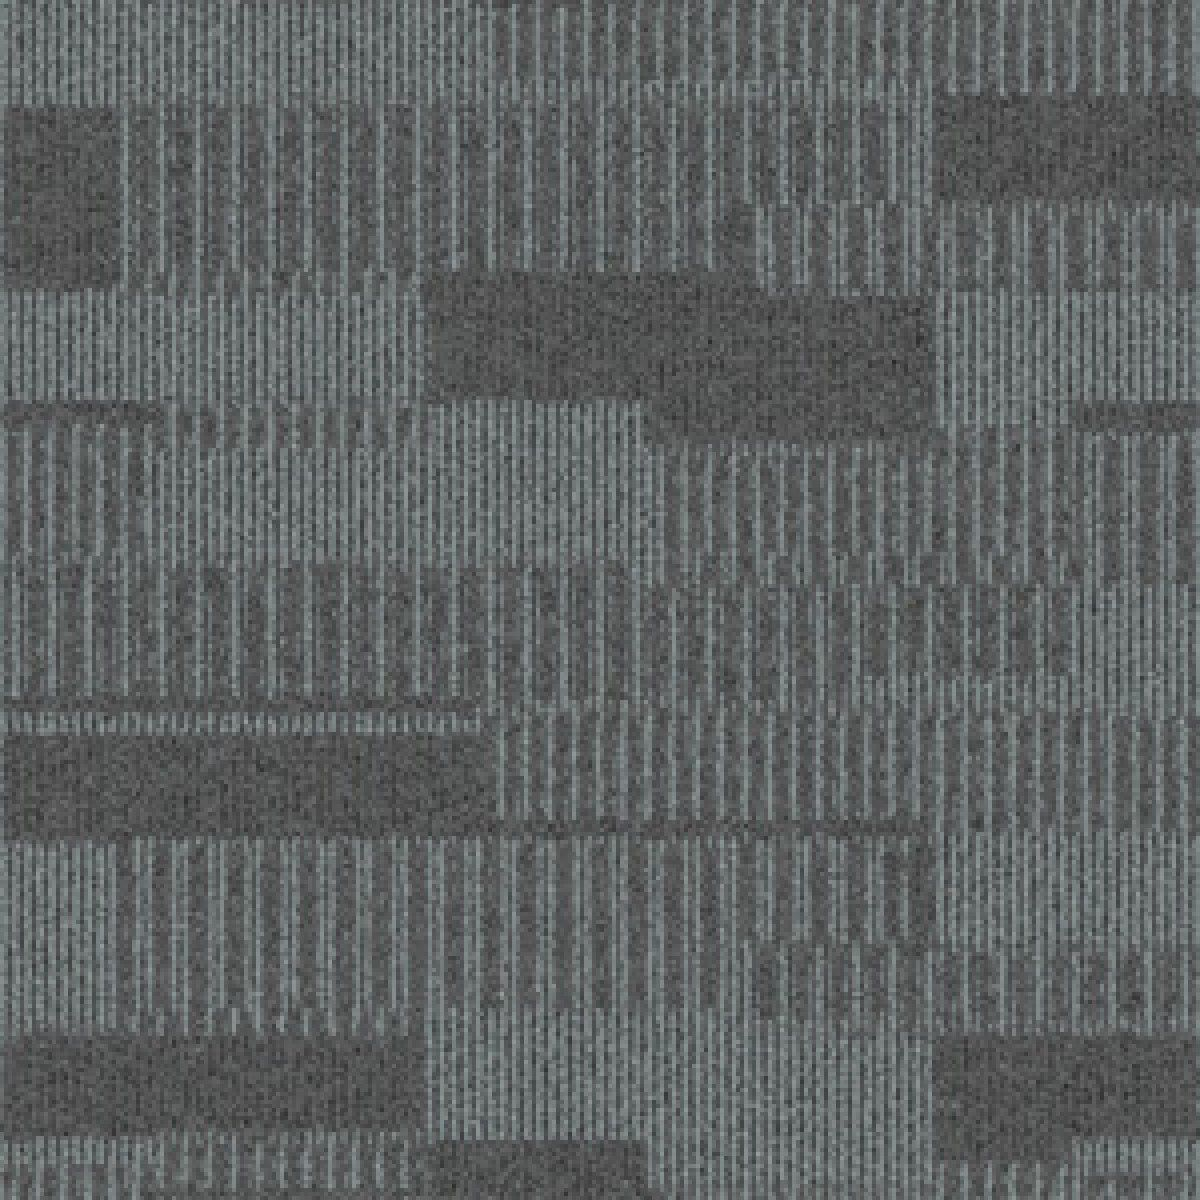 Beau Commercial Office Carpet | InterfaceFLOR Duet Carpet Tiles Colour Shadow  Grey .* JUST £24.75